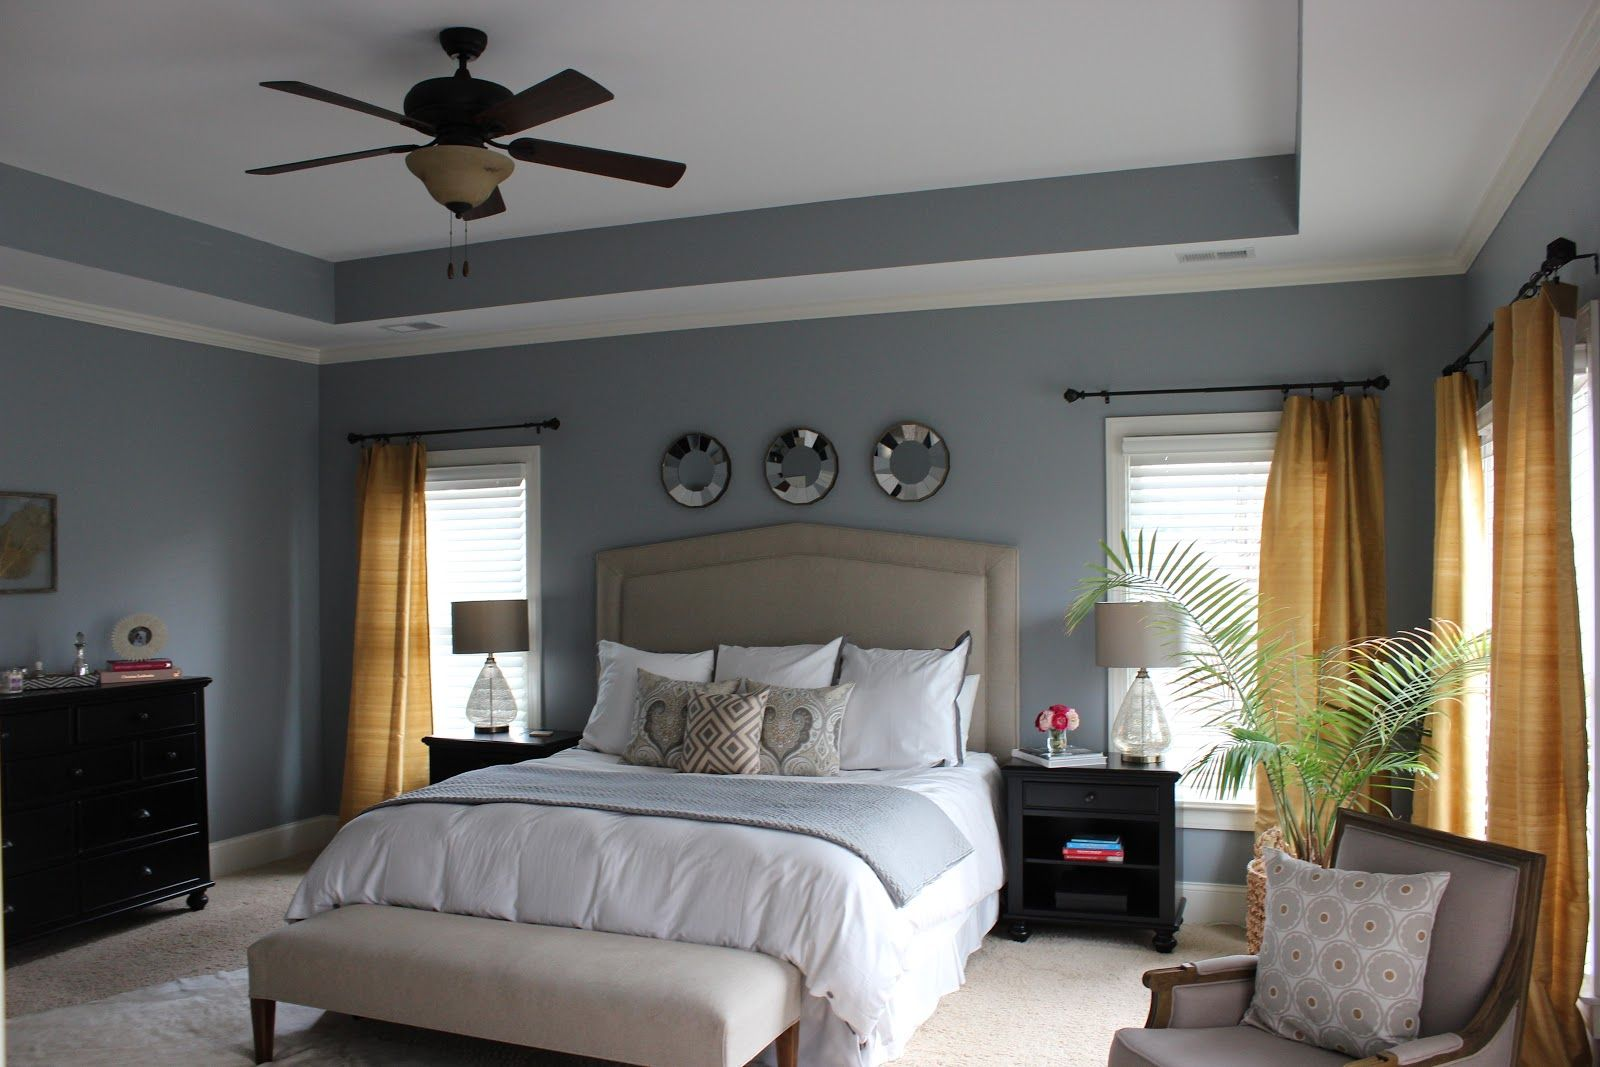 Benjamin moore gull wing grey walls great master bedroom for Bedroom decorating ideas with grey walls